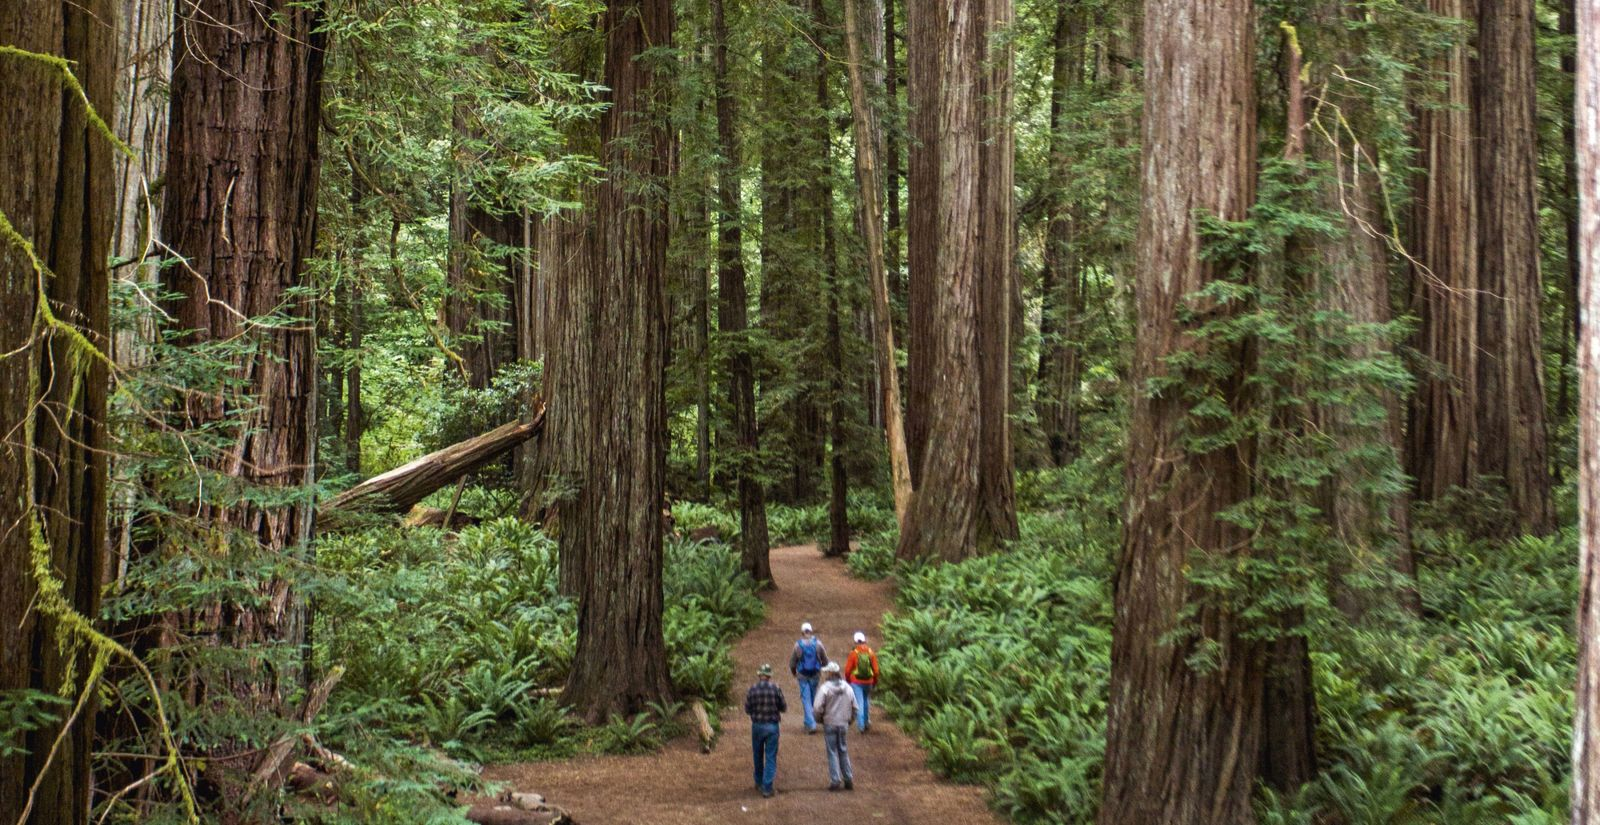 California cool: Beyond the Redwood curtain